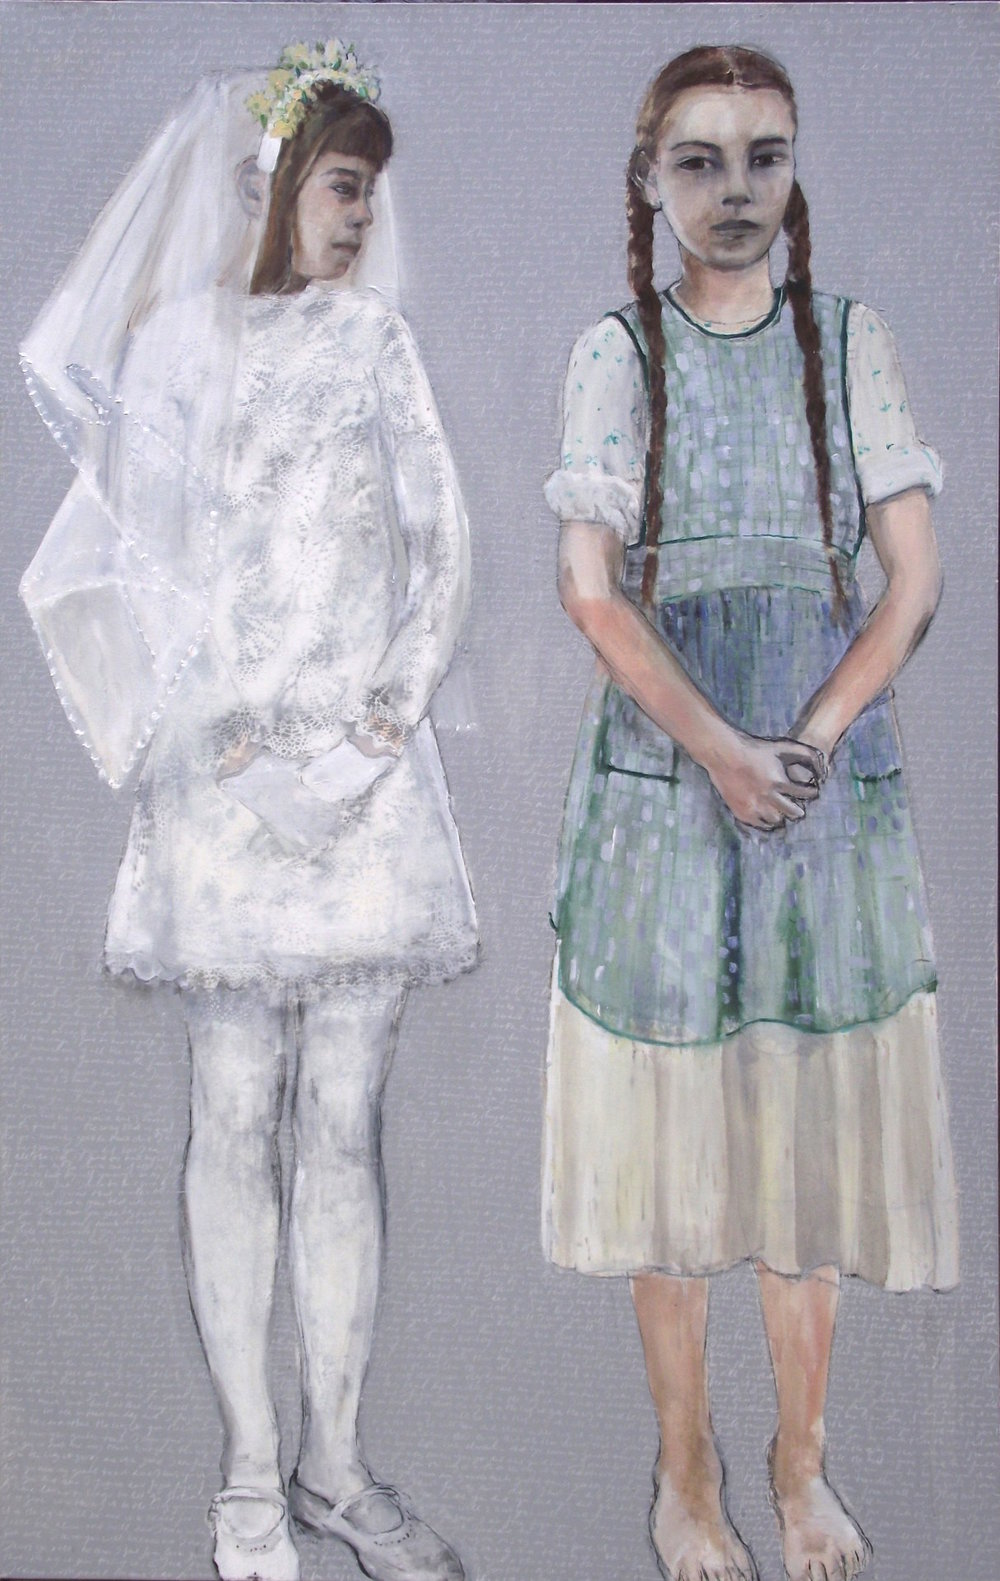 Girls from different worlds - Oil and white pencil on canvas - Sold